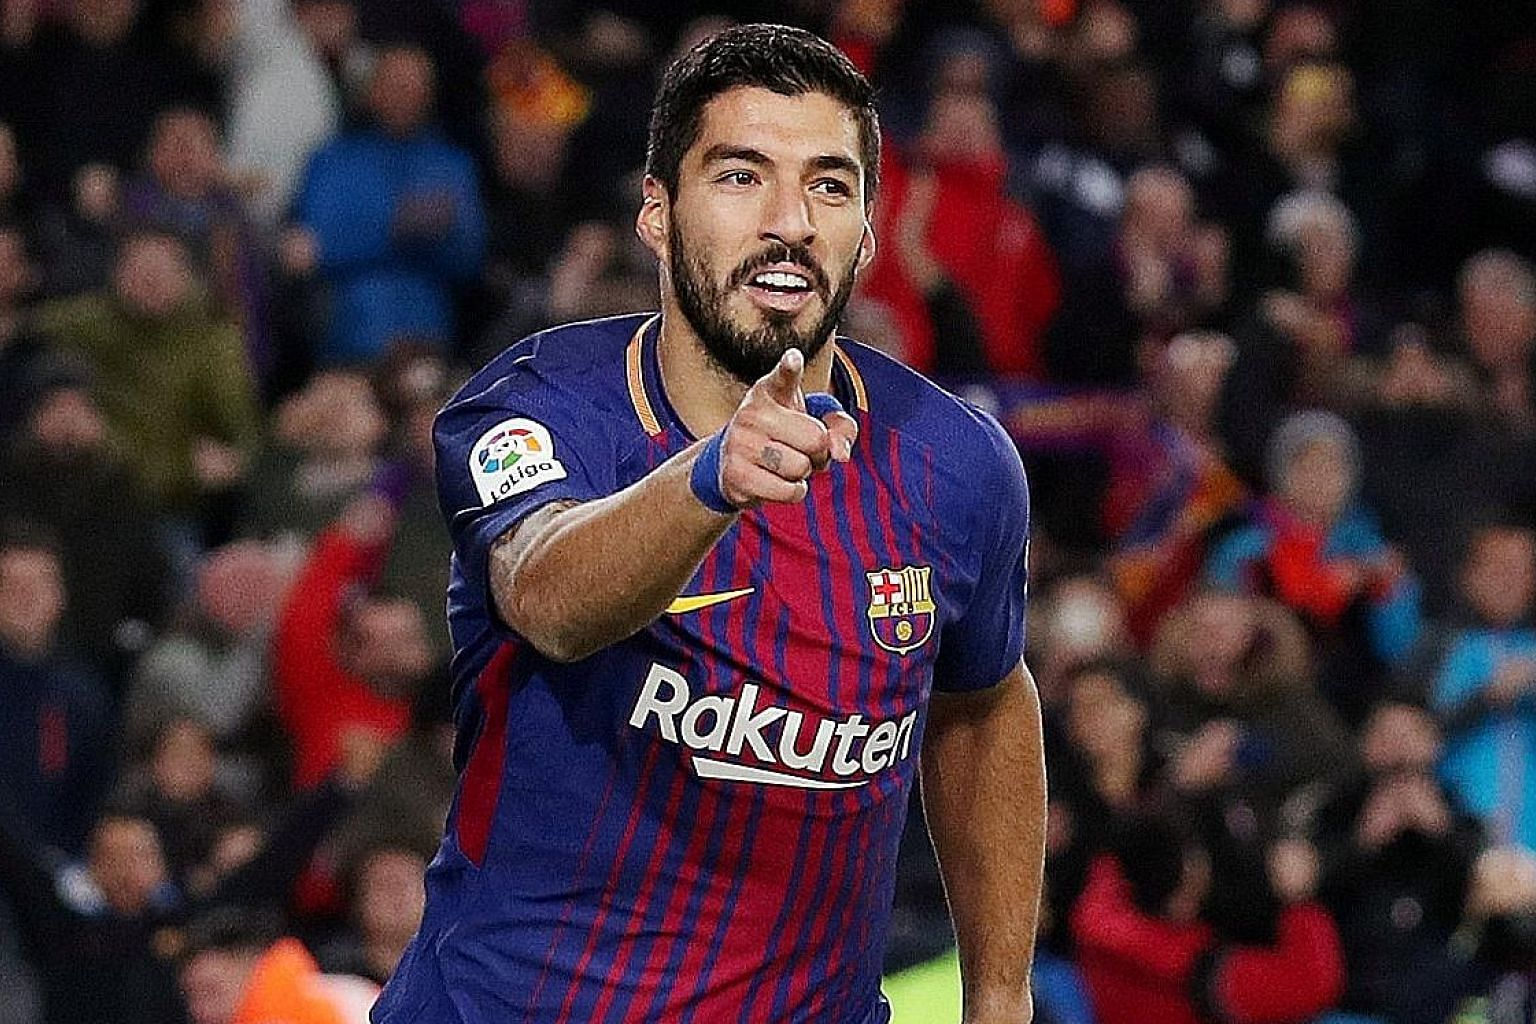 Barcelona's Luis Suarez celebrating scoring against Valencia in the Spanish King's Cup. It was the Uruguayan's ninth goal against Valencia, the team he has scored most against since moving to Spain in 2014.